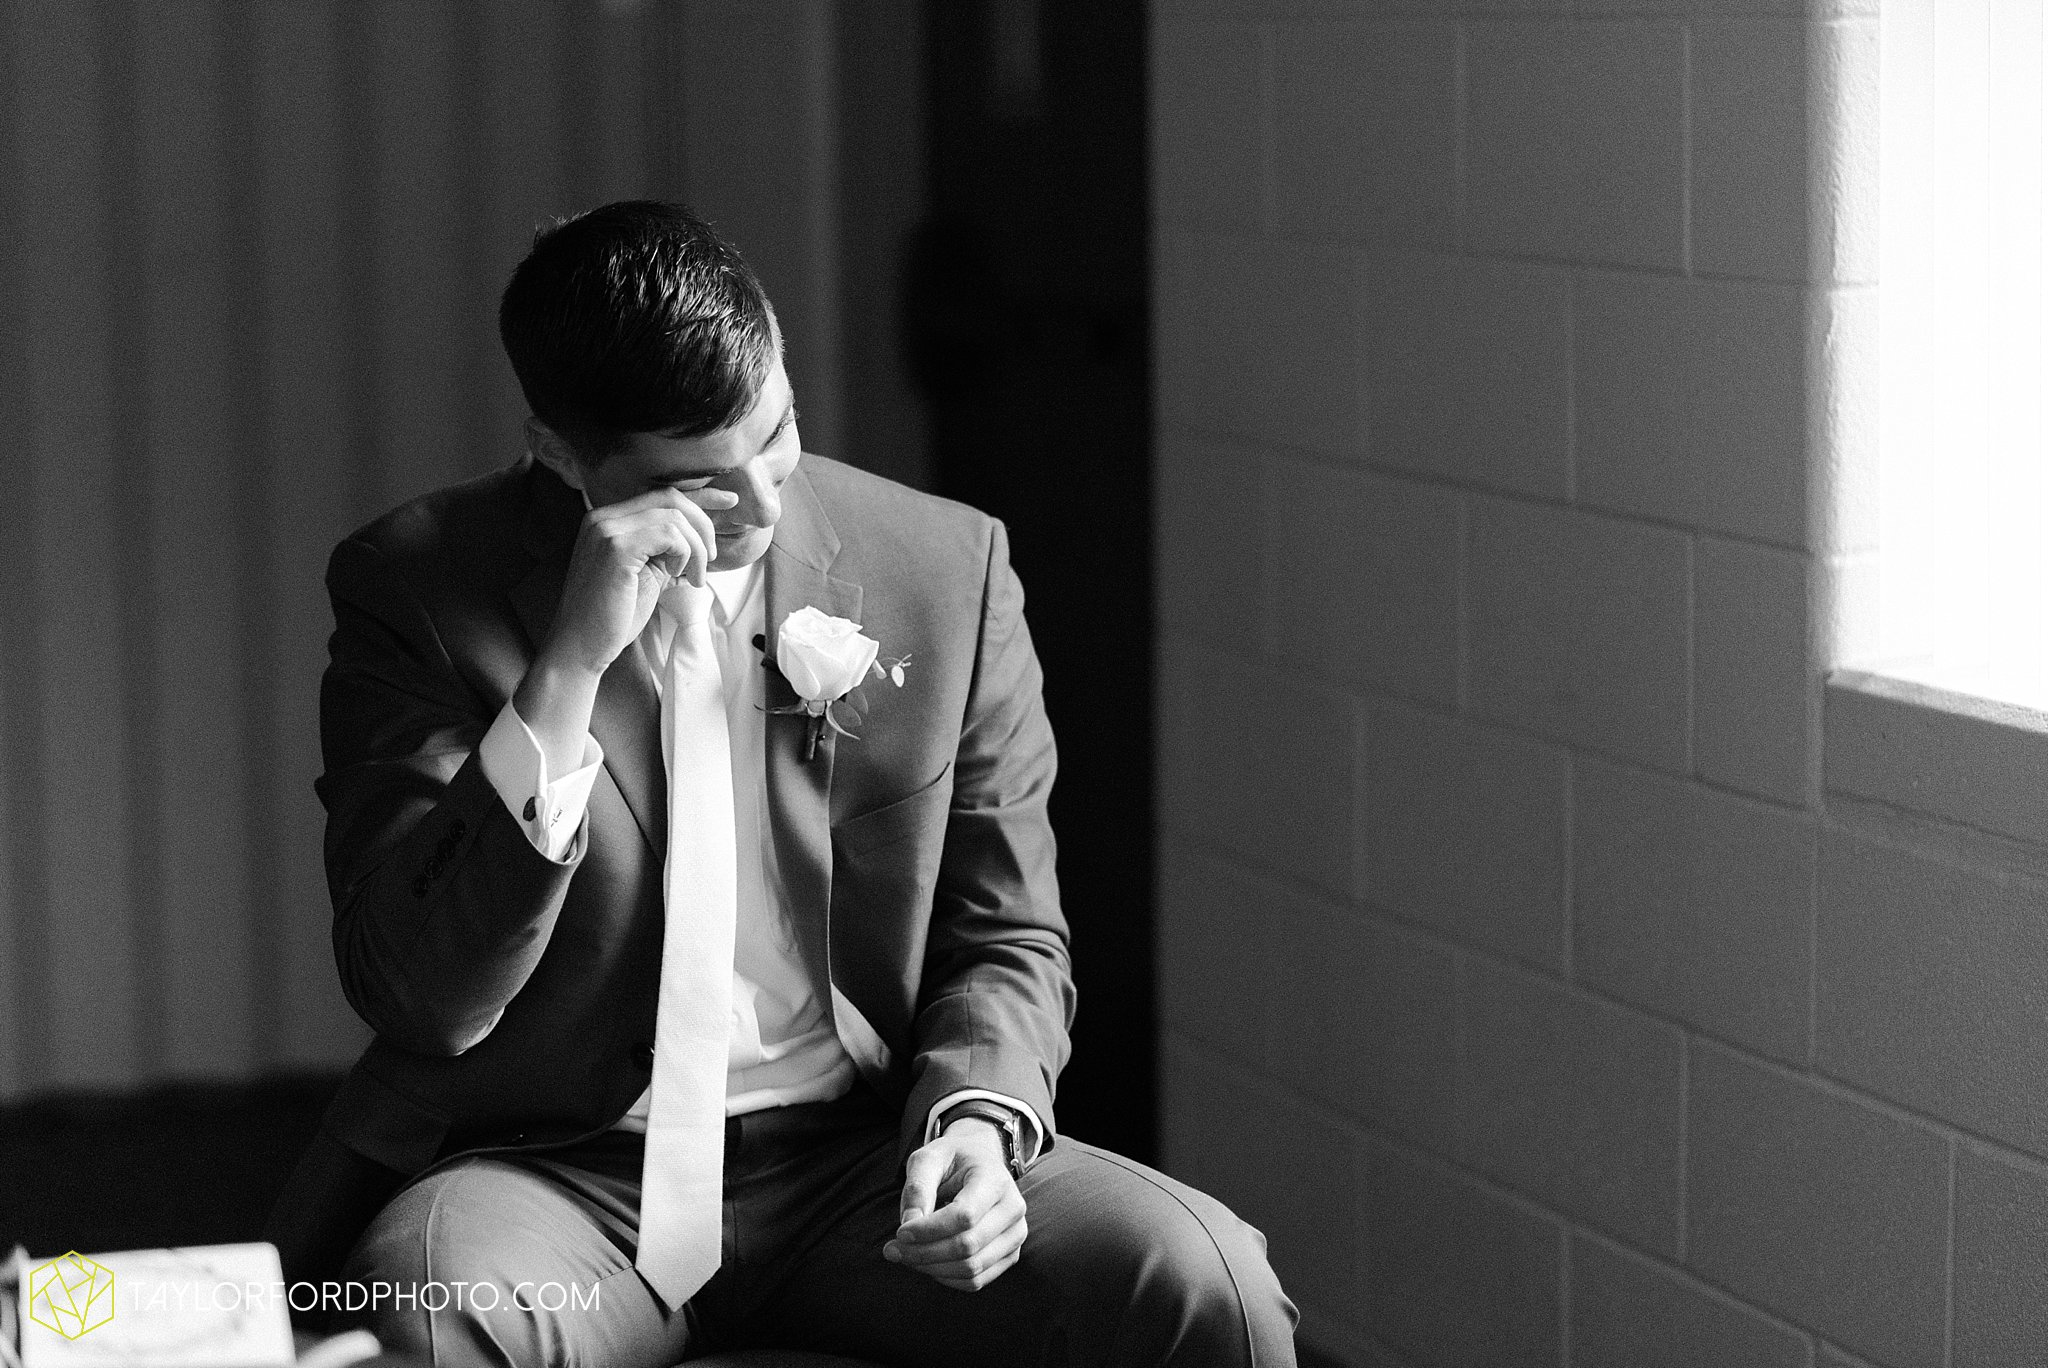 kacee-haden-sholl-second-story-saint-marys-knights-of-columbus-defiance-ohio-wedding-photographer-taylor-ford-photography_0140.jpg